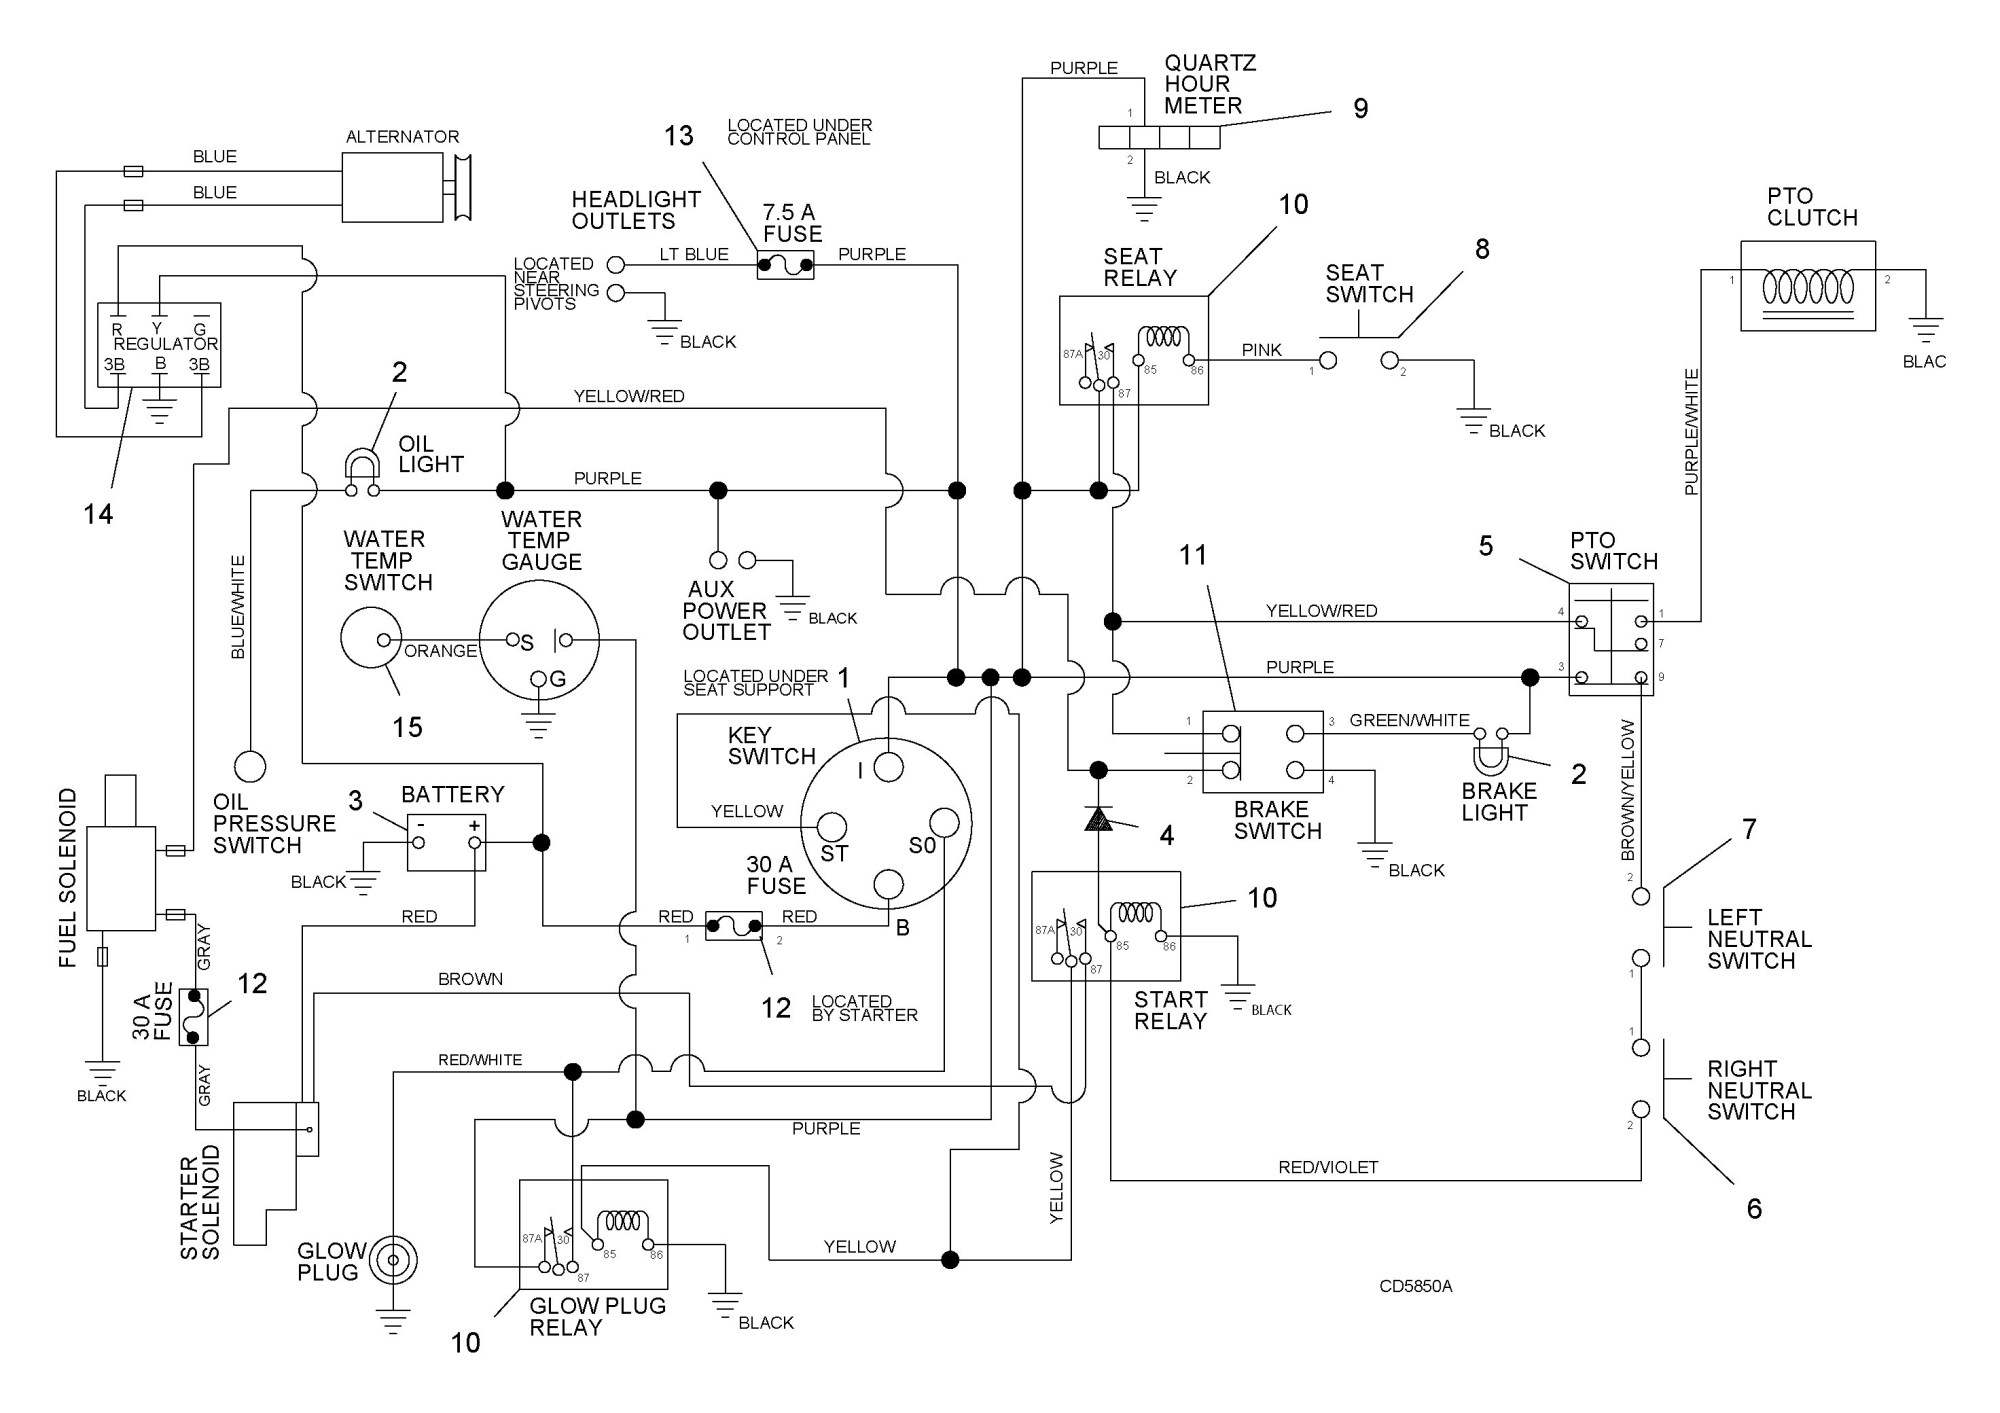 hight resolution of kubota m7040 wiring diagram schematic diagrams kubota bx25 electrical schematic kubota bx25 wiring diagram